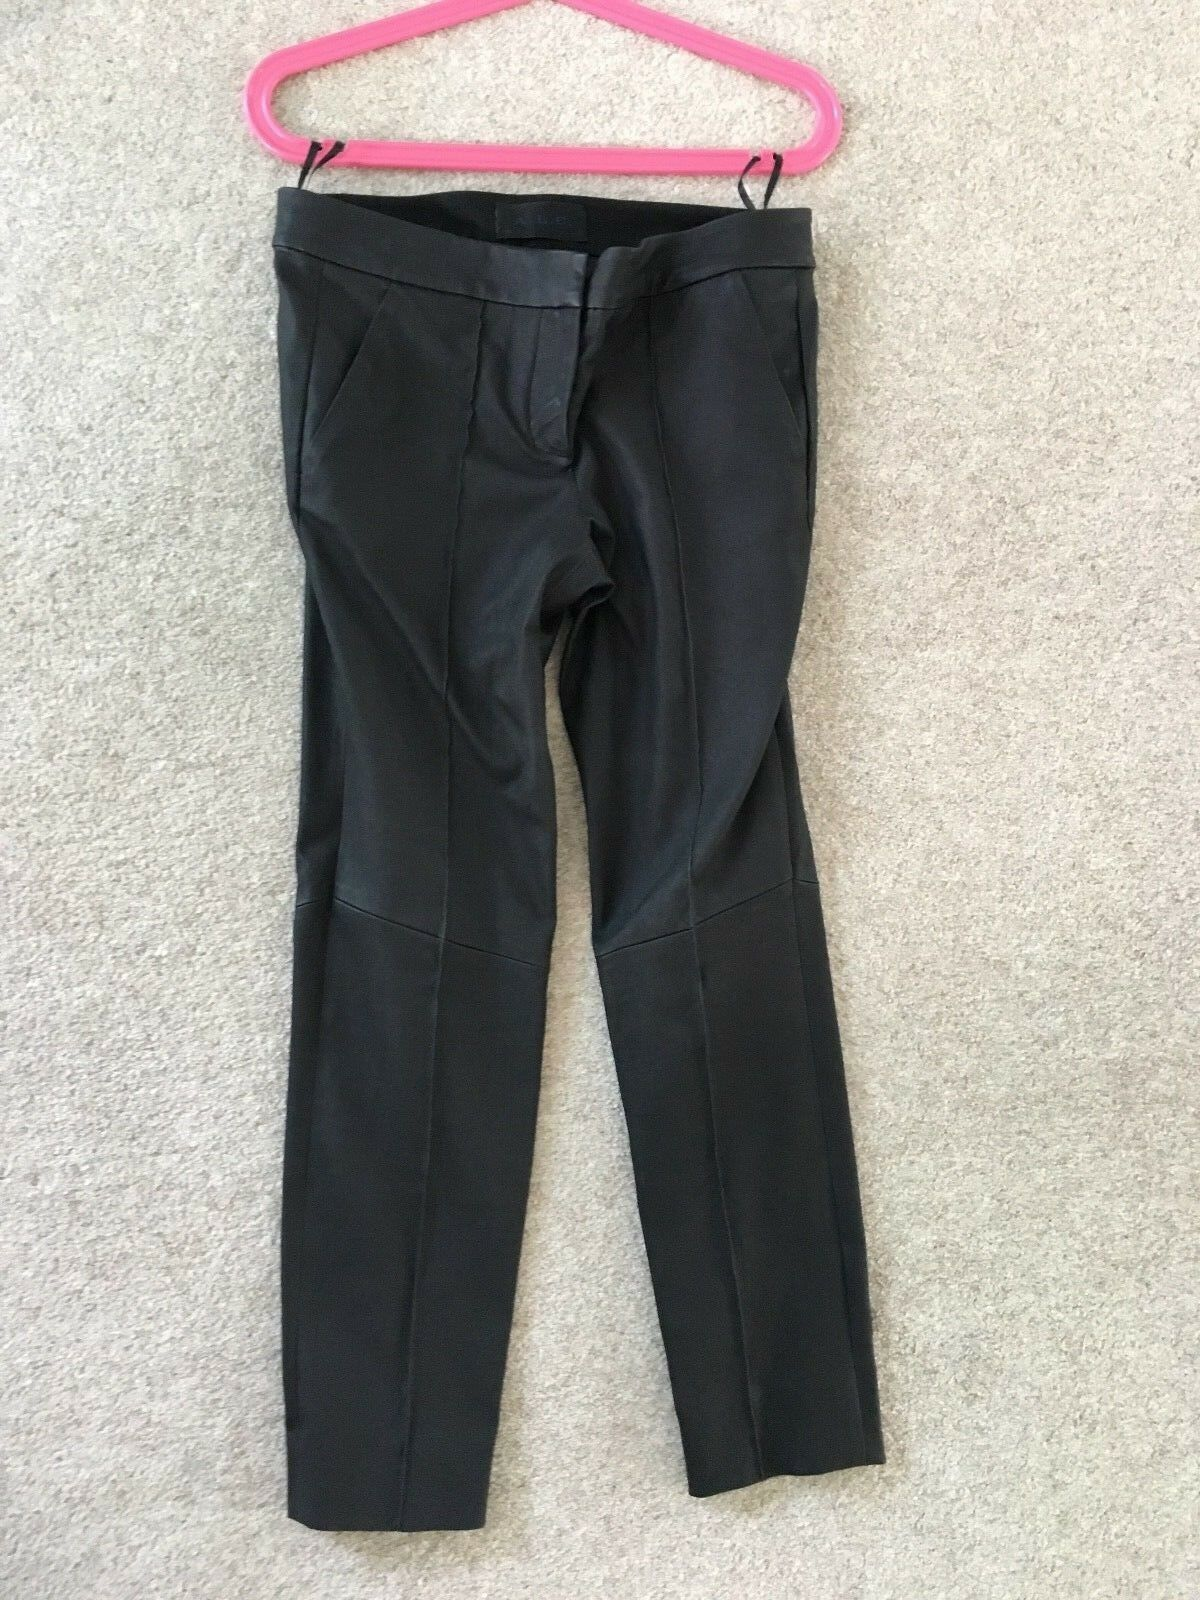 ALC Lamb Leather Cropped Skinny Trousers 10